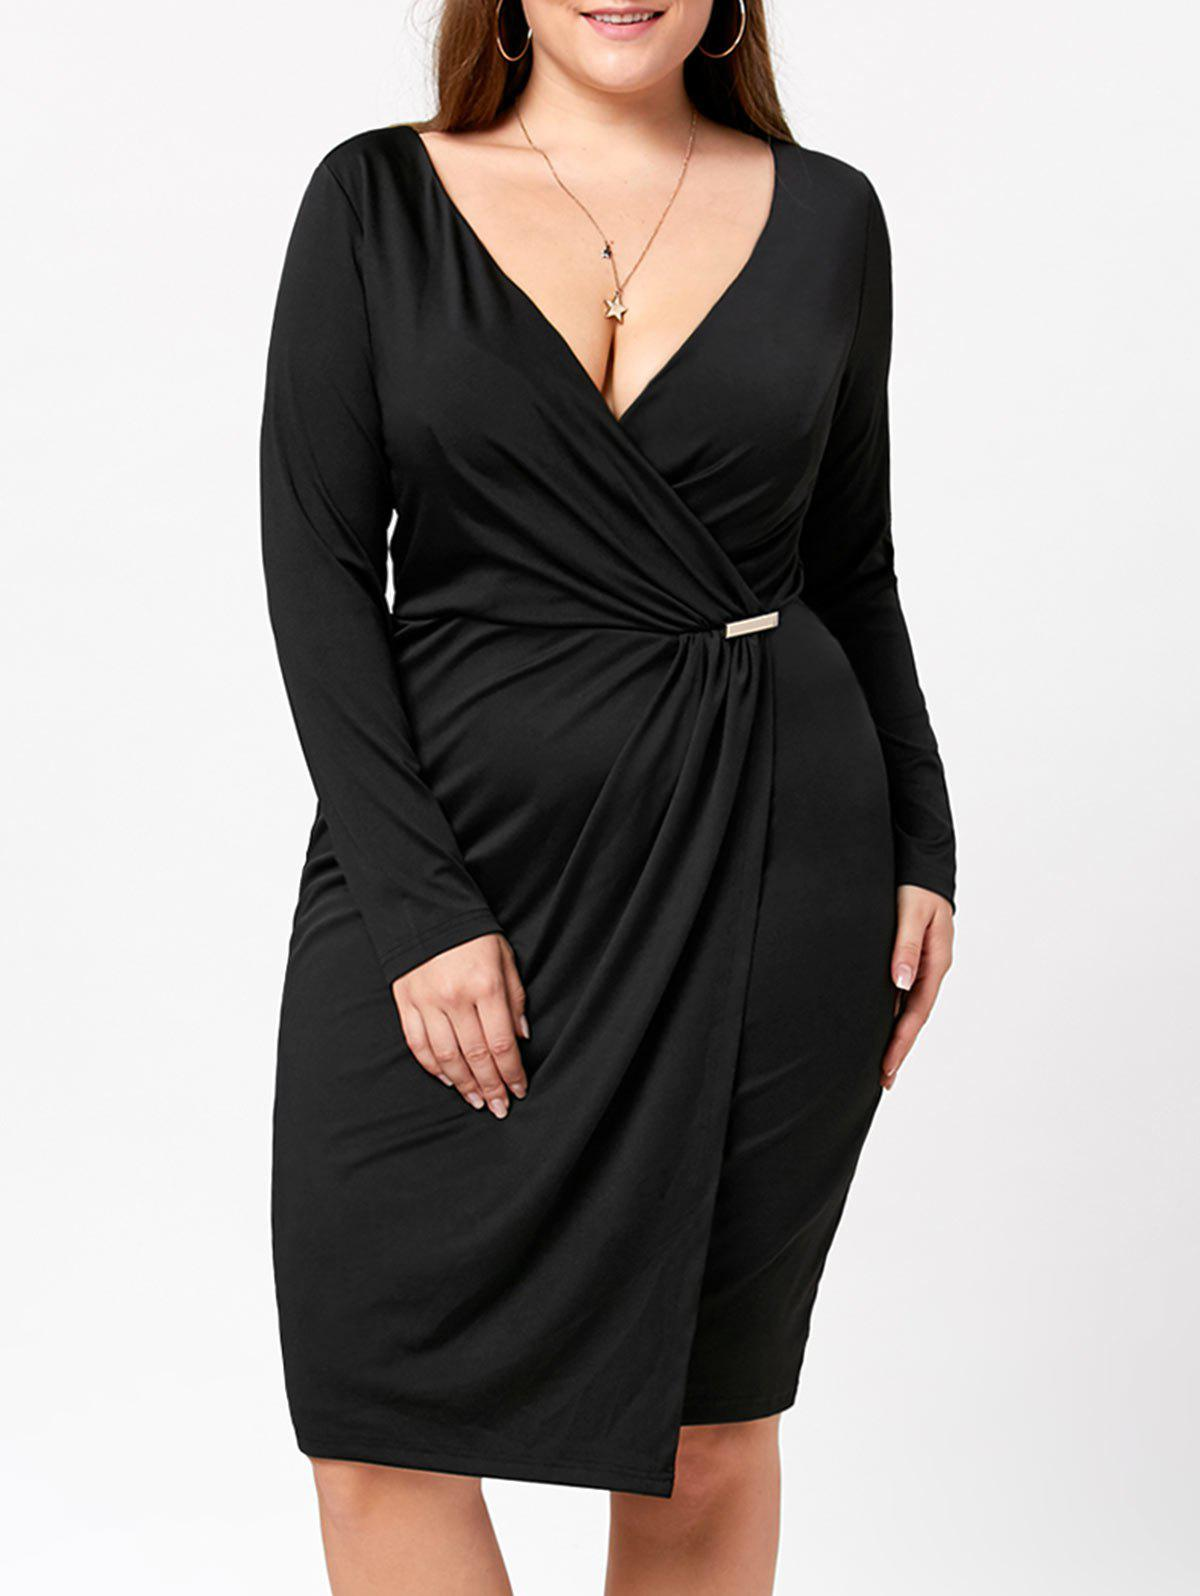 4eb13b99845 Hot Plunging Neck Plus Size Fitted Dress